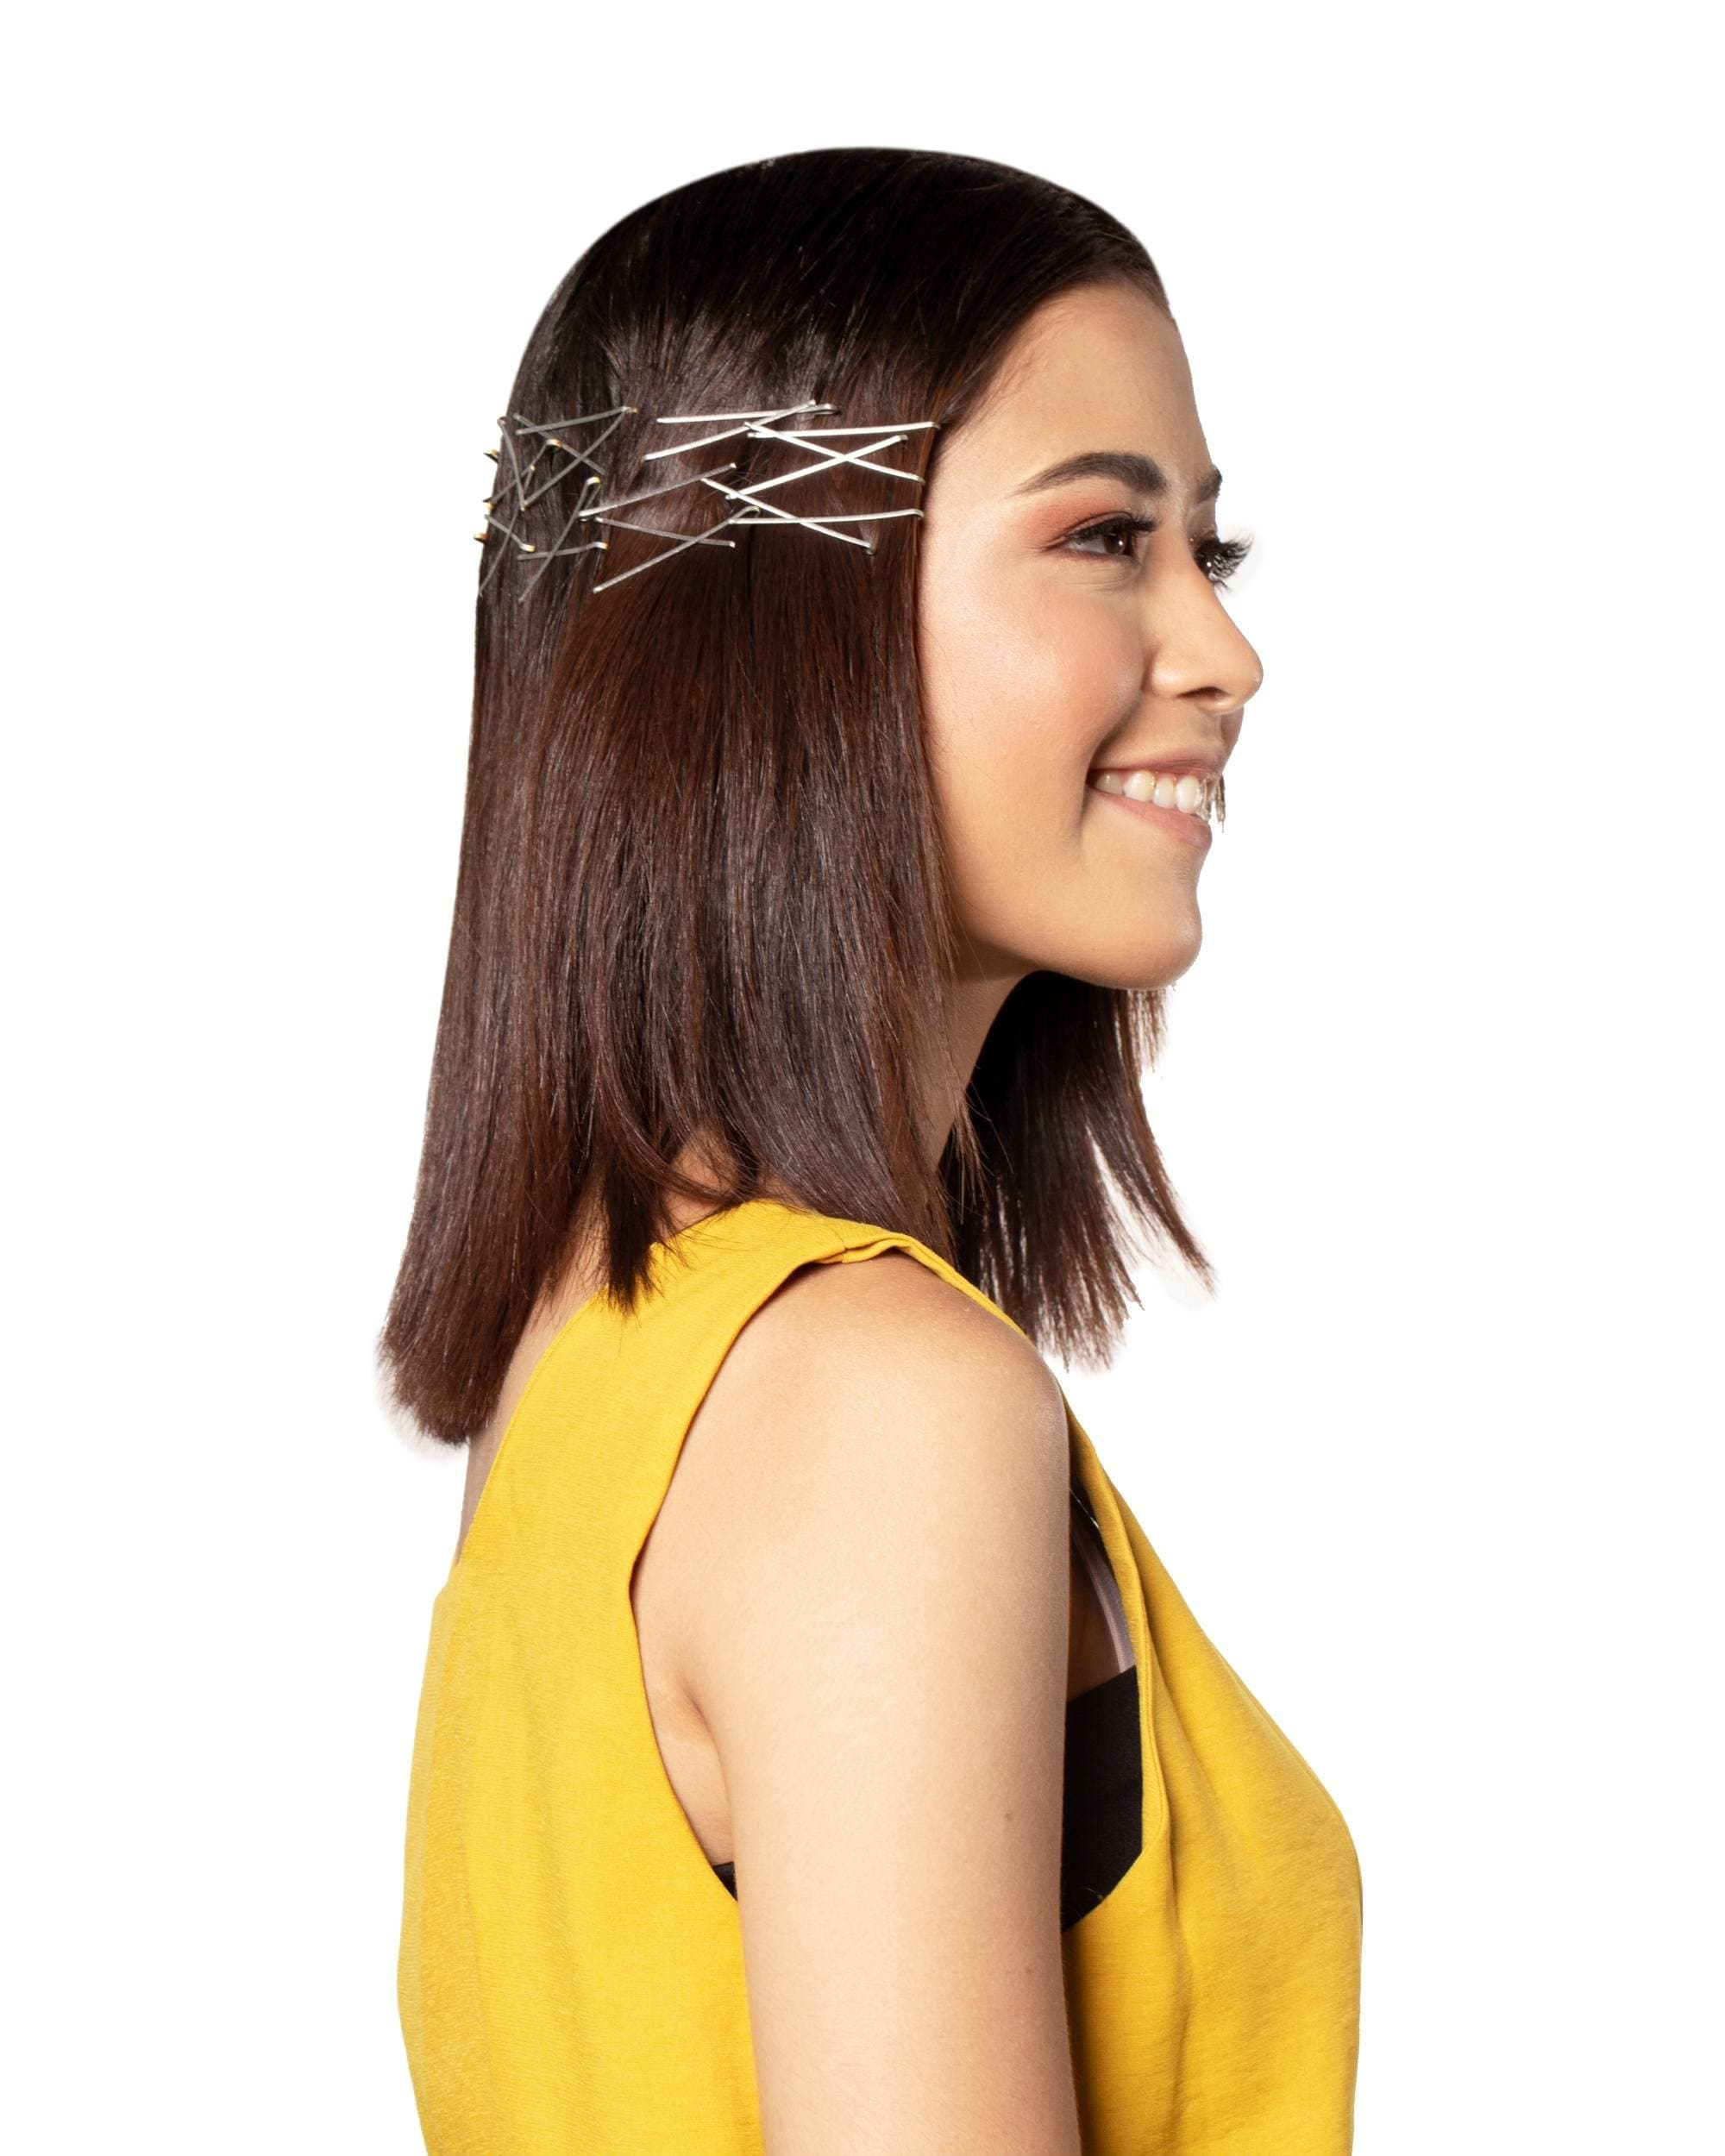 Asian woman with bobby pin hair crown wearing a sleeveless blouse